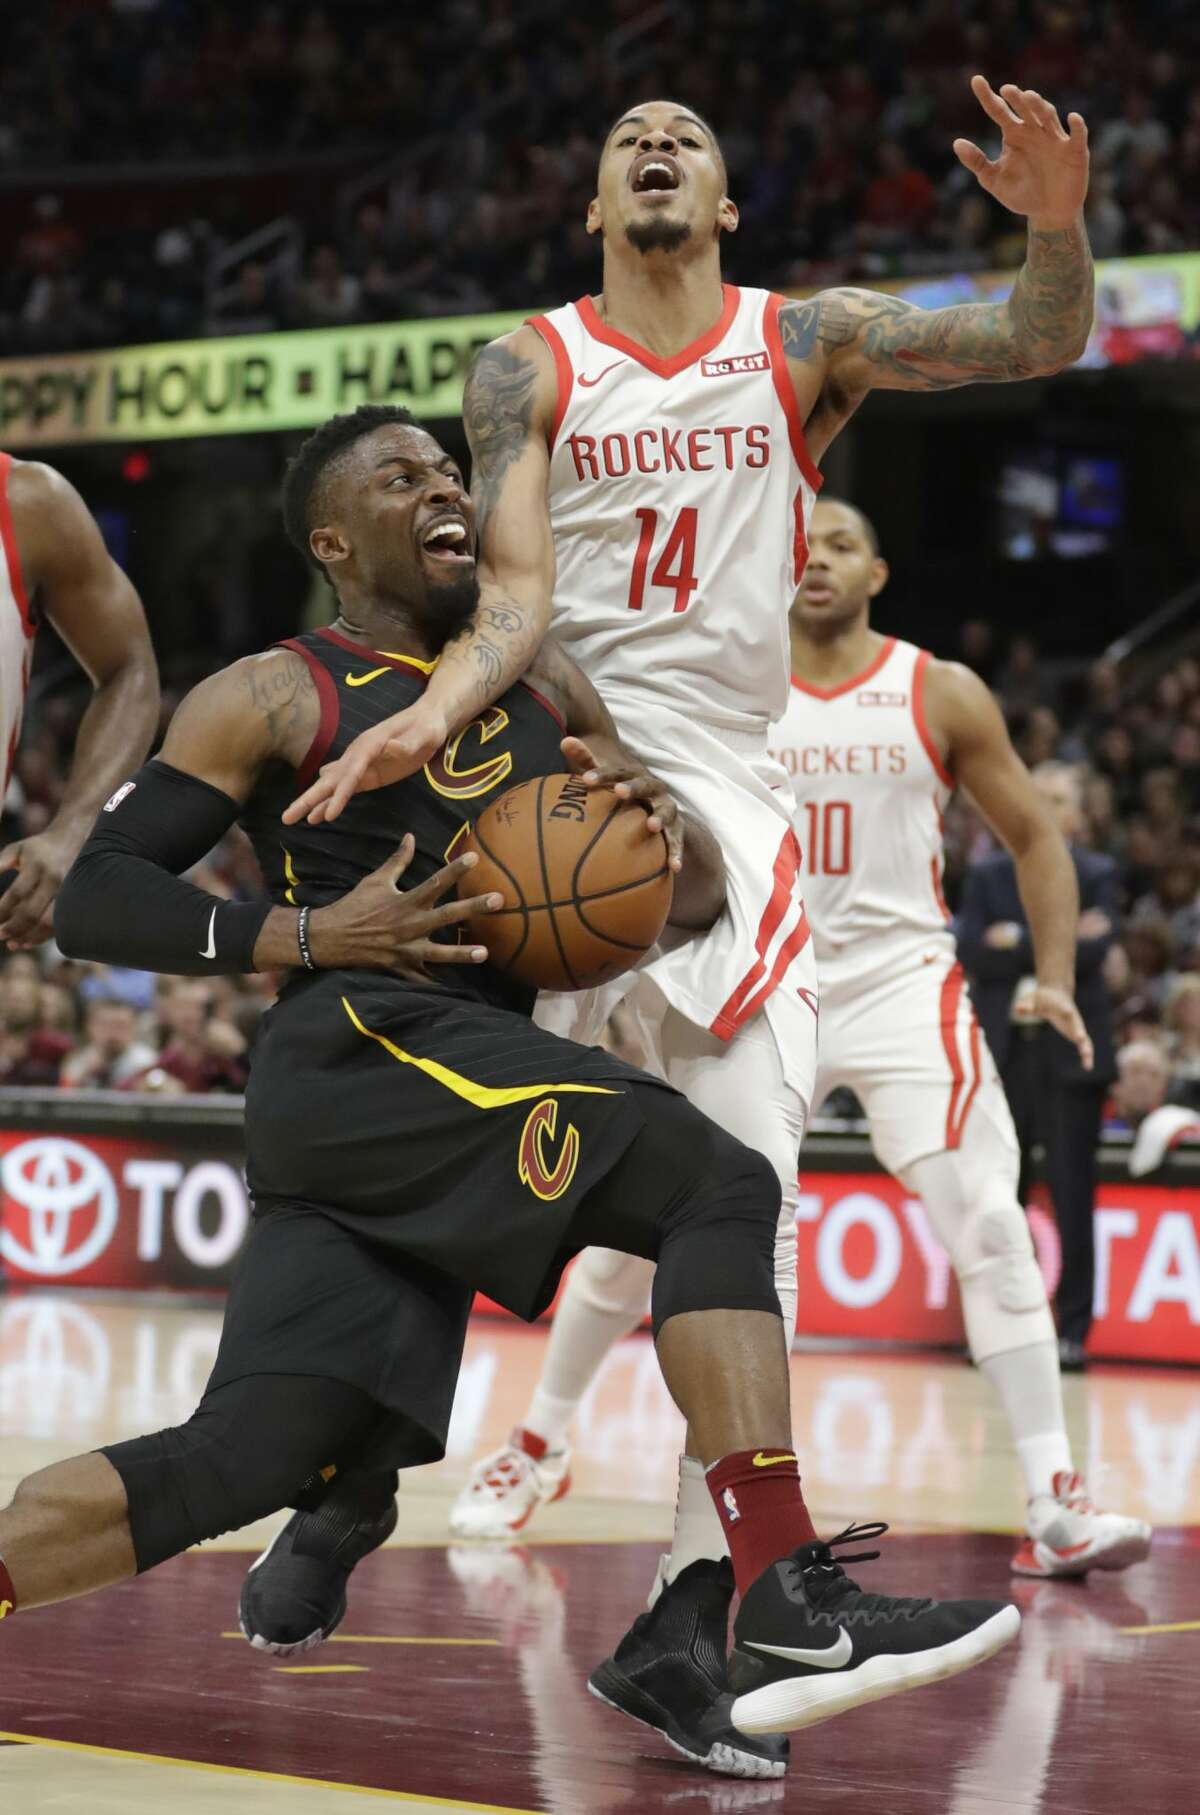 Cleveland Cavaliers' David Nwaba, left, drives past Houston Rockets' Gerald Green in the second half of an NBA basketball game, Saturday, Nov. 24, 2018, in Cleveland. Green was called for a foul. (AP Photo/Tony Dejak)